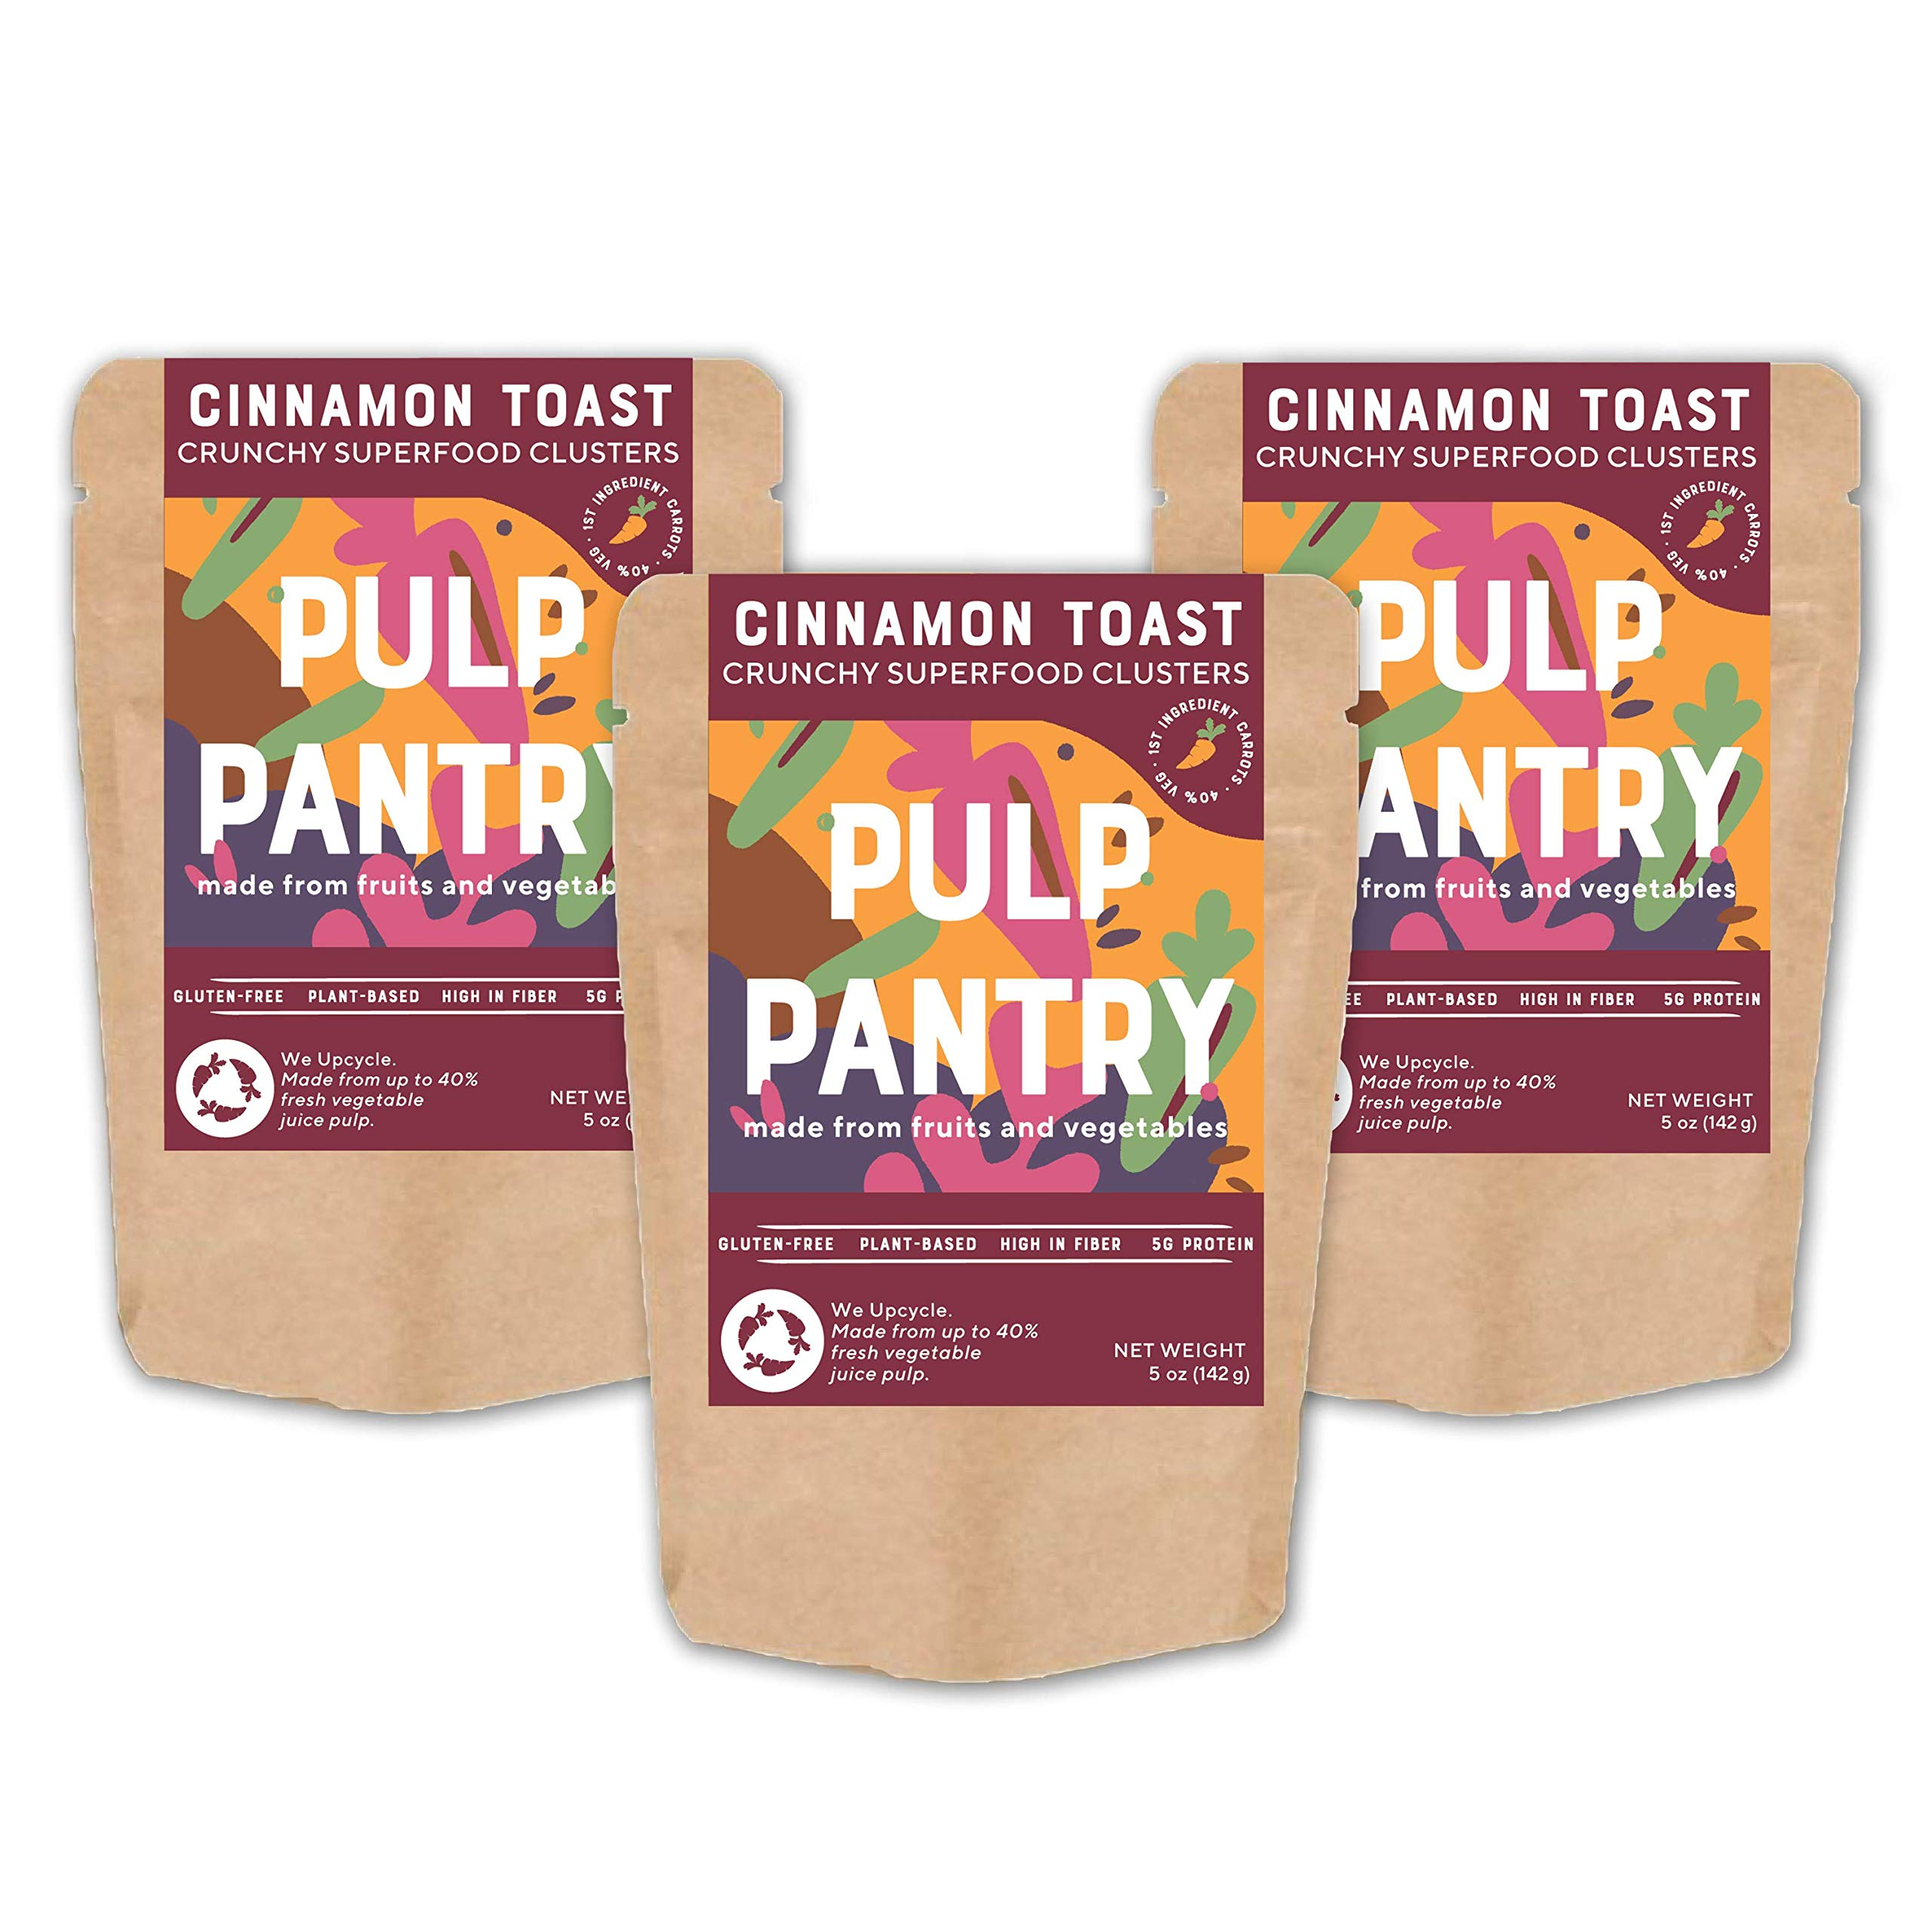 Cinnamon Toast Plant-Based Granola Bites by Pulp Pantry | Grain-Free | Gluten-Free | Nut-Free | Paleo | Prebiotic | High Fiber | Made With Fruits & Veggies | 5 oz, 3-Pack